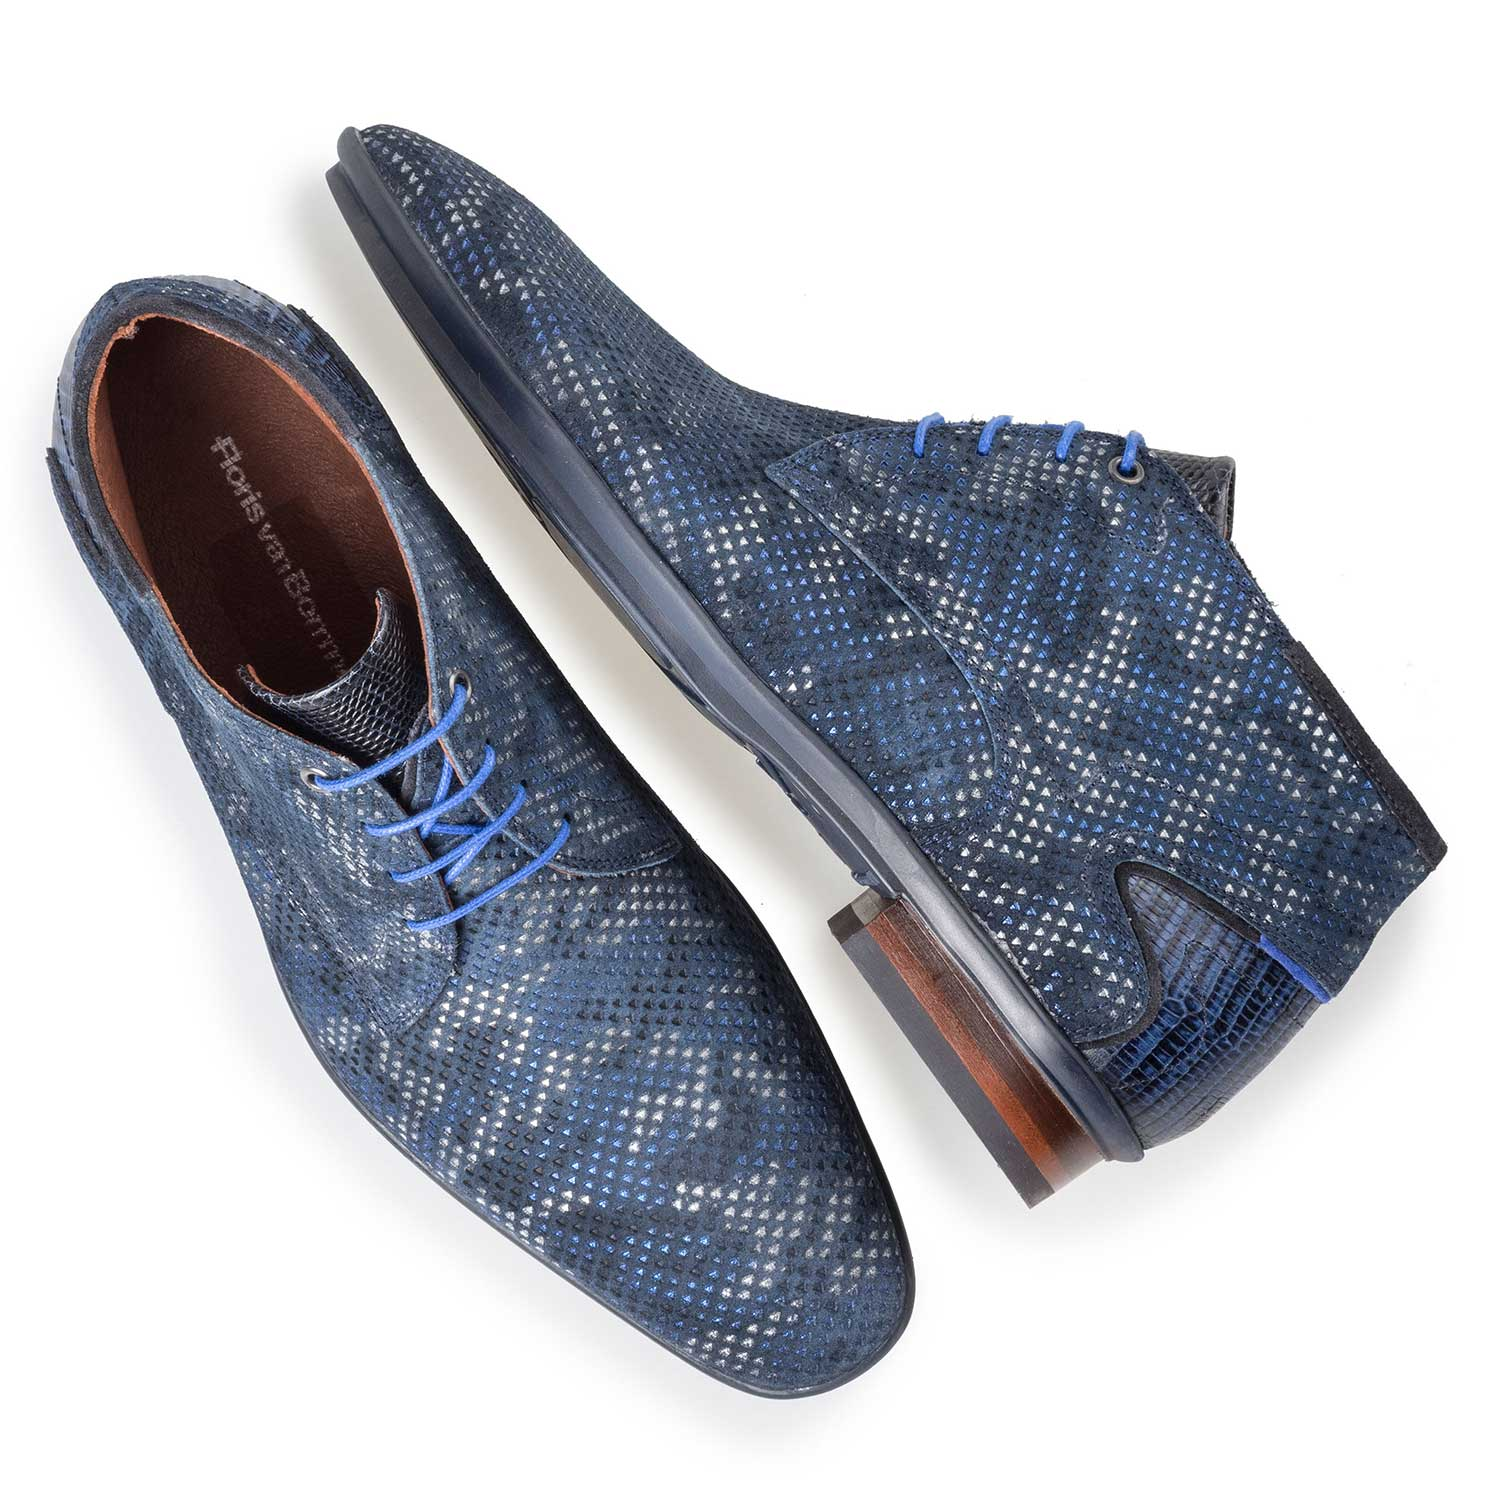 10131/03 - Mid-high blue patterned lace shoe